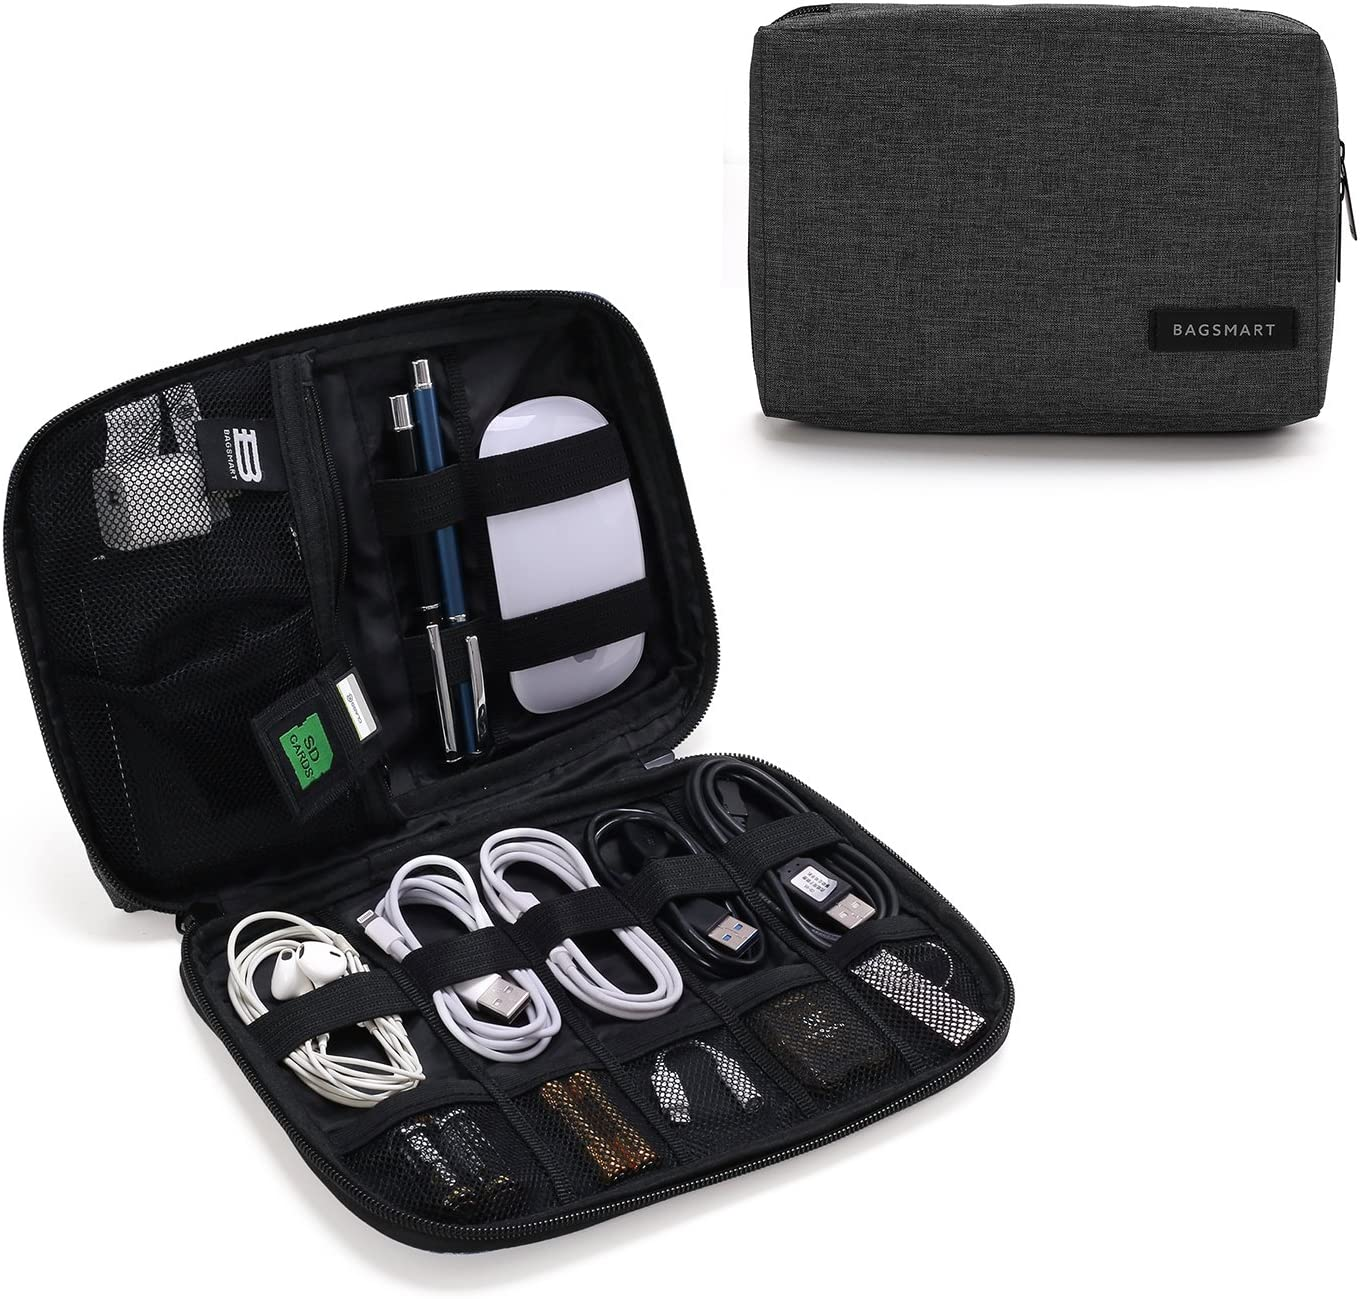 case for cords cord case travel kit, travel caddy Cord Carrier Travel Case